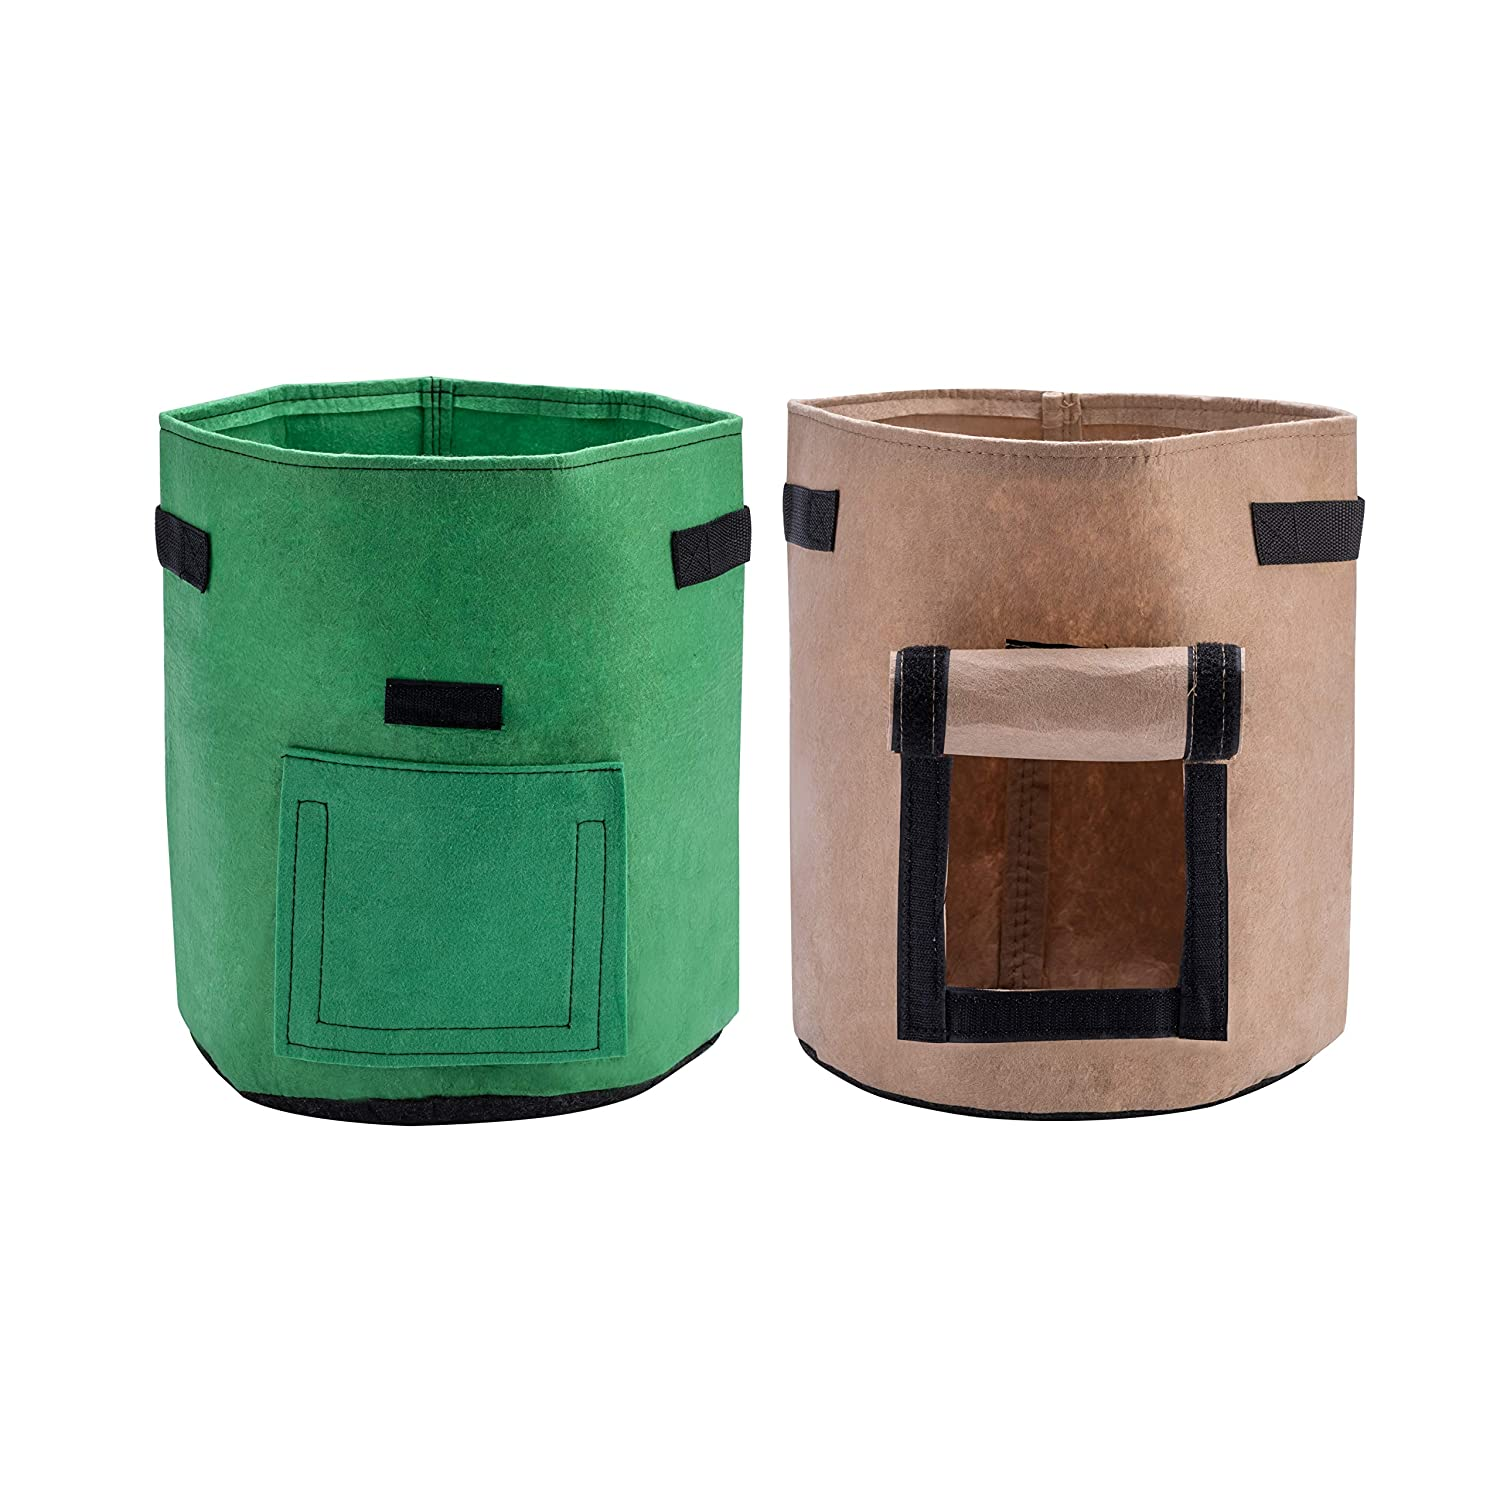 X L MAGNET Potato Grow Bags 2-Pack 7 Gallon Planter Pots Garden Bags to Grow Vegetables with Aeration Fabric Flap Handles and Windowfor Harvesting Fruit Flower Potato Carrot (Green & Brown)